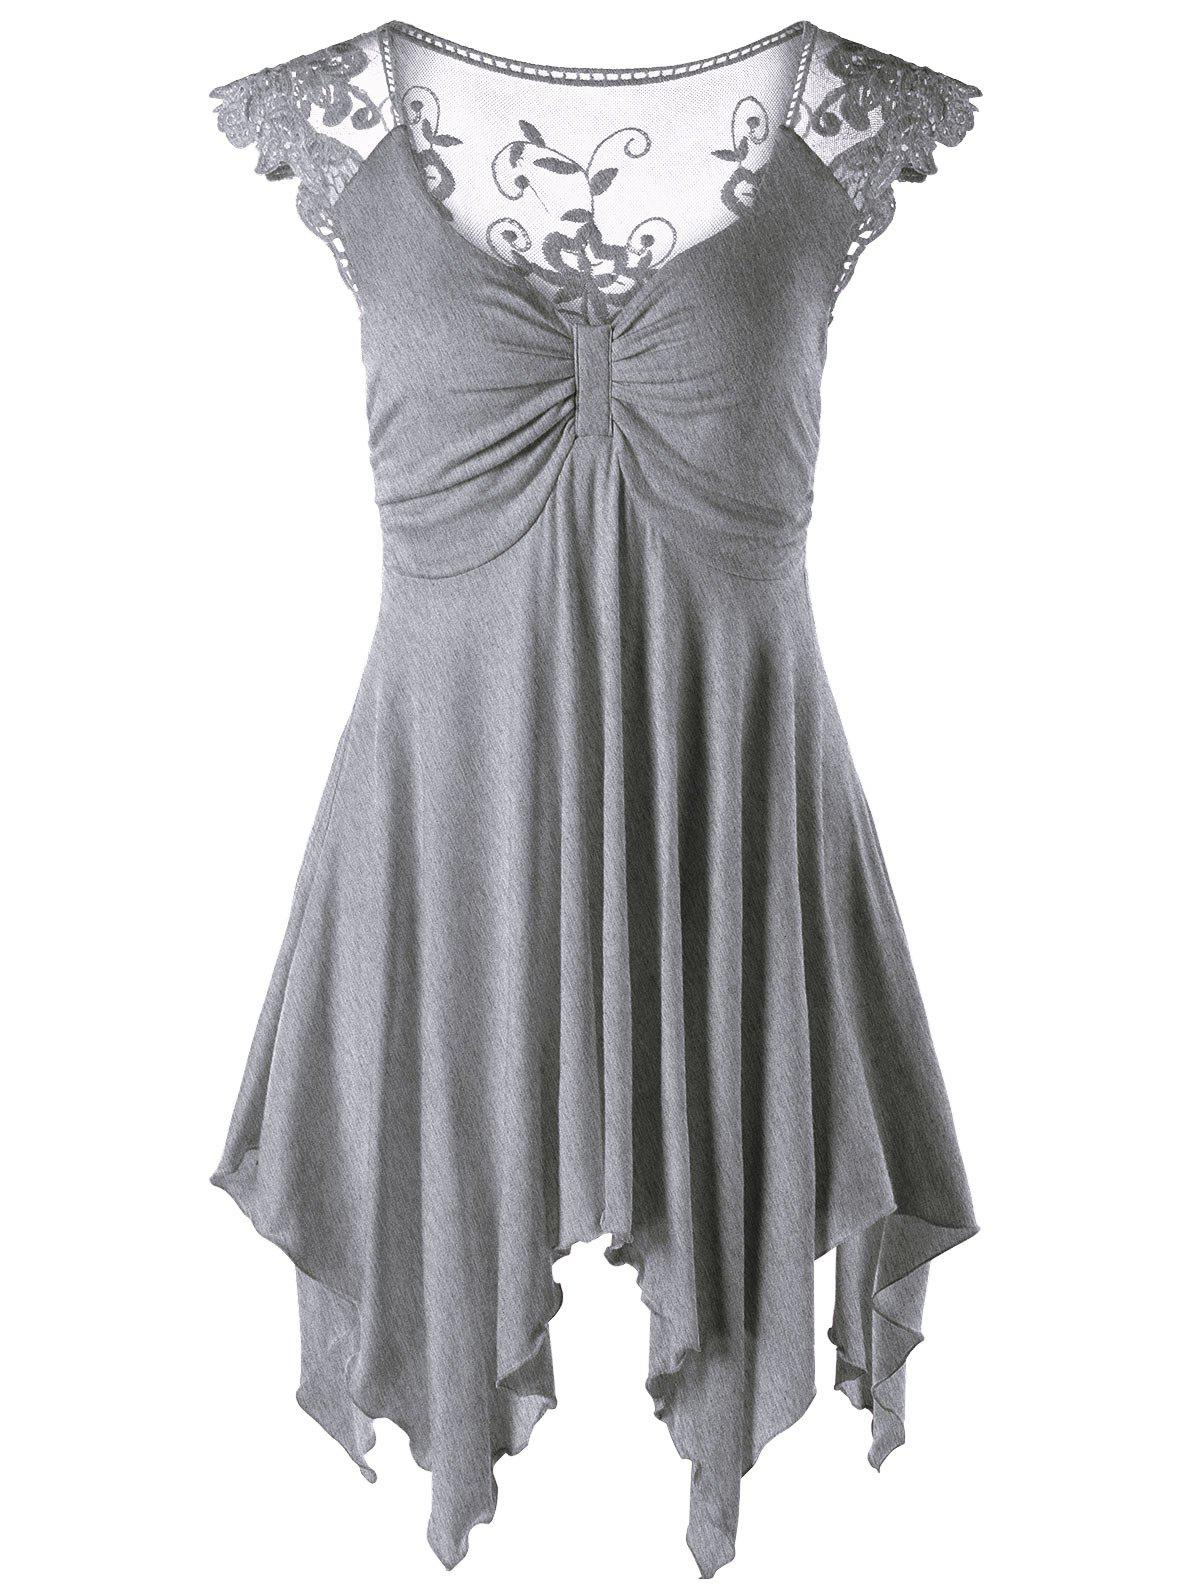 Lace Panel Cap Sleeve Asymmetric Top - GRAY 2XL